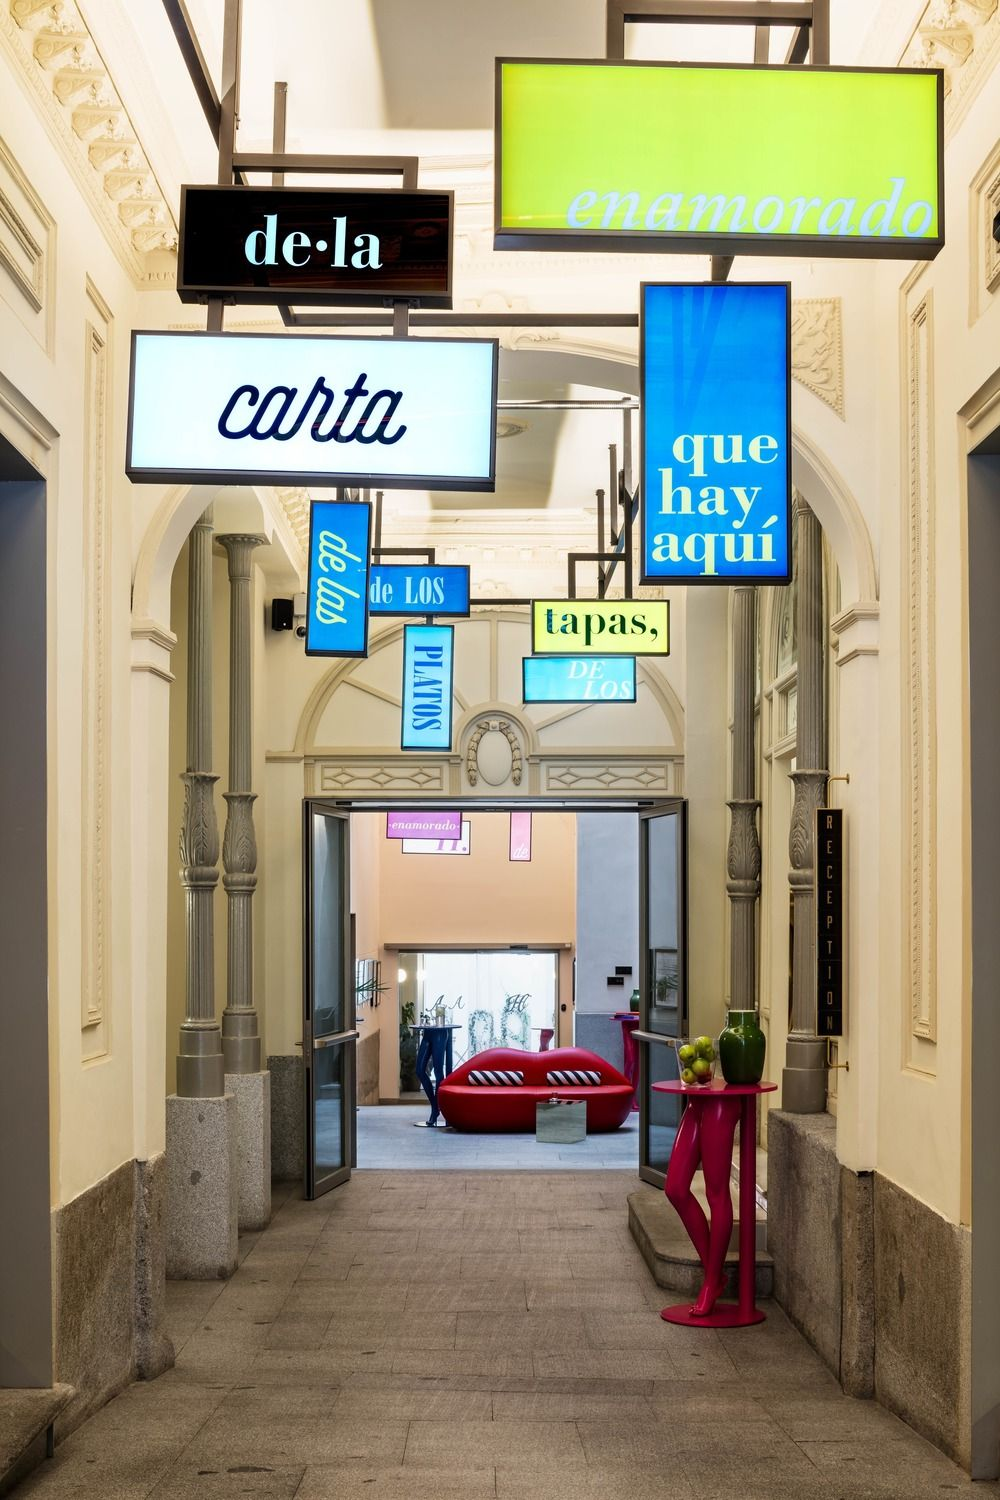 The Axel Hotel Madrid Achieves Character Through Color - Design Milk